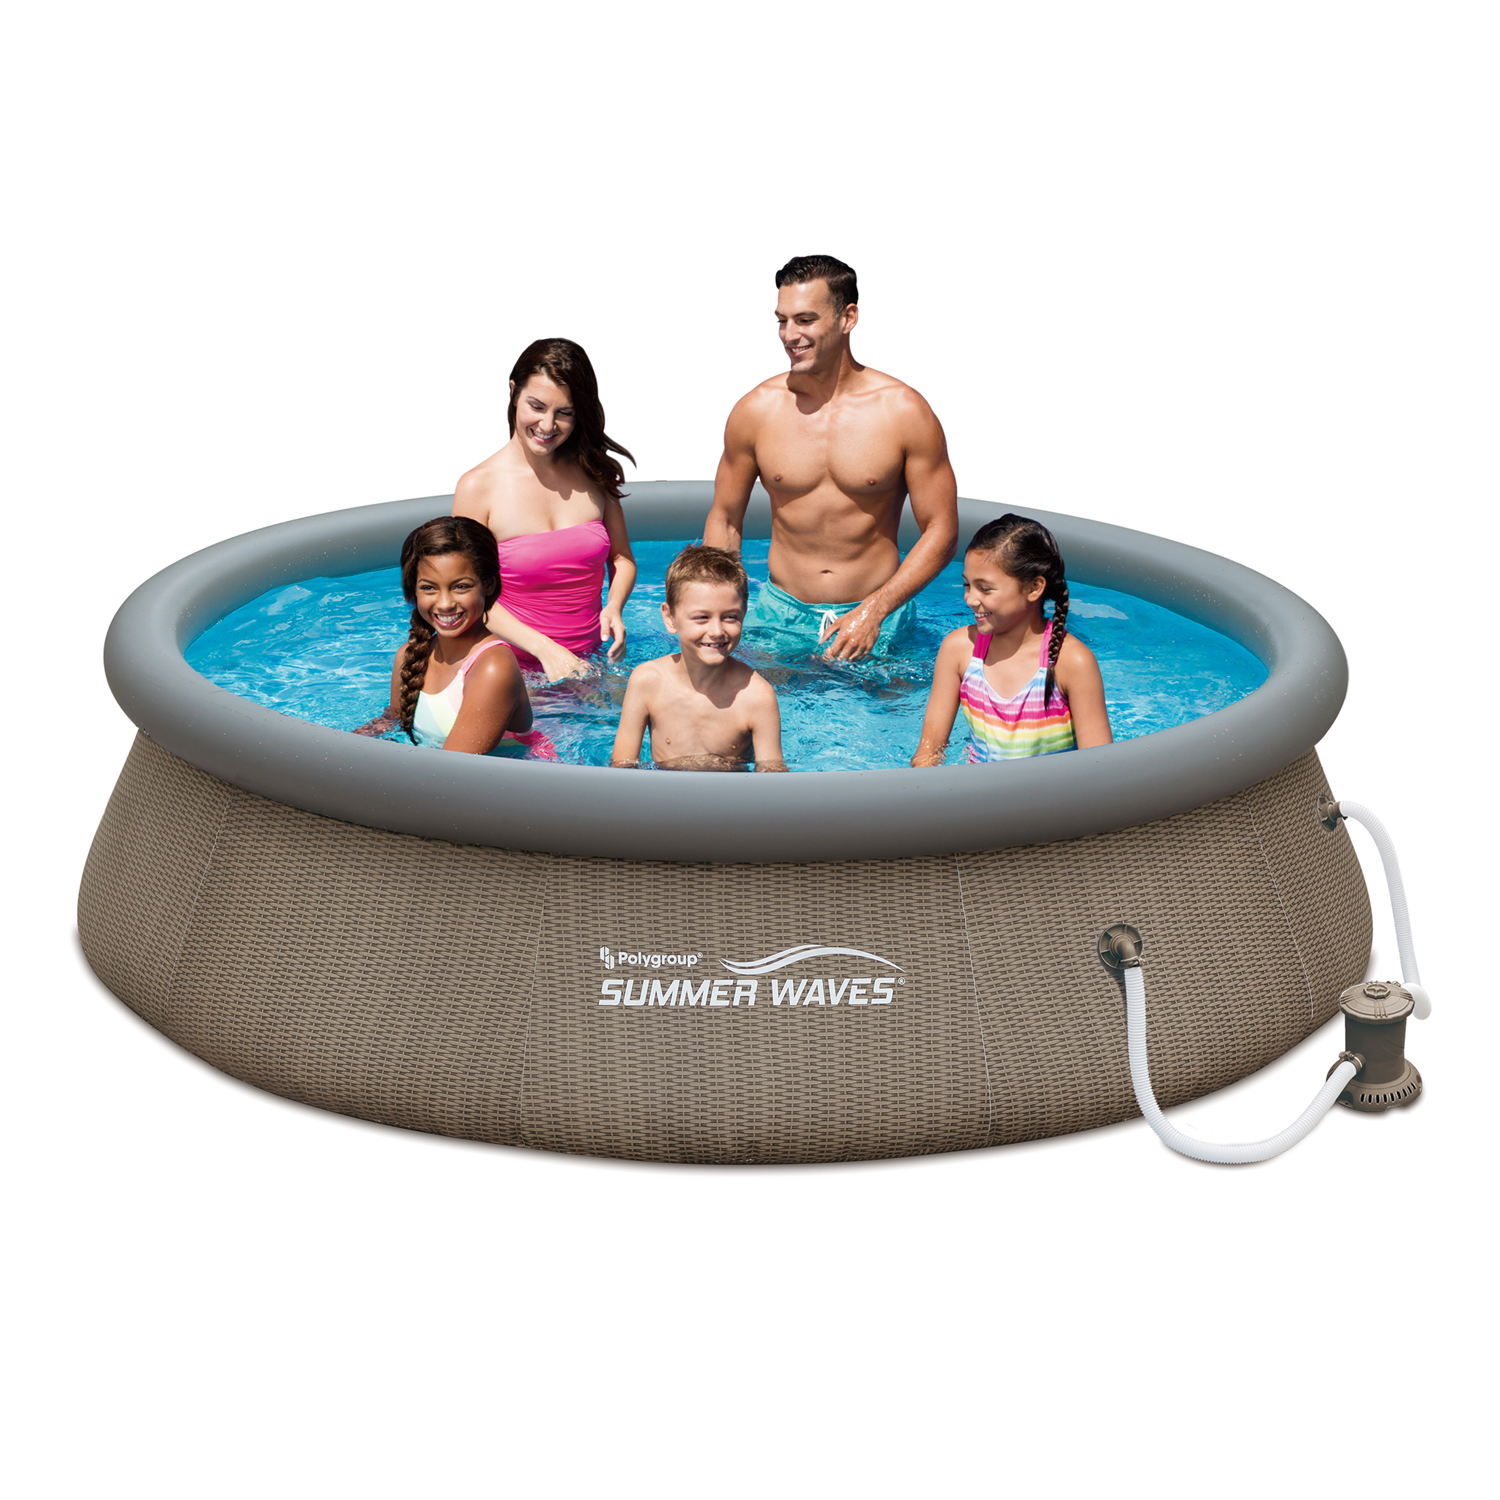 "Summer Waves 10' x 30"" Quick Set Above Ground Swimming Pool with Basket Weave Wicker Print And Filter Pump System"